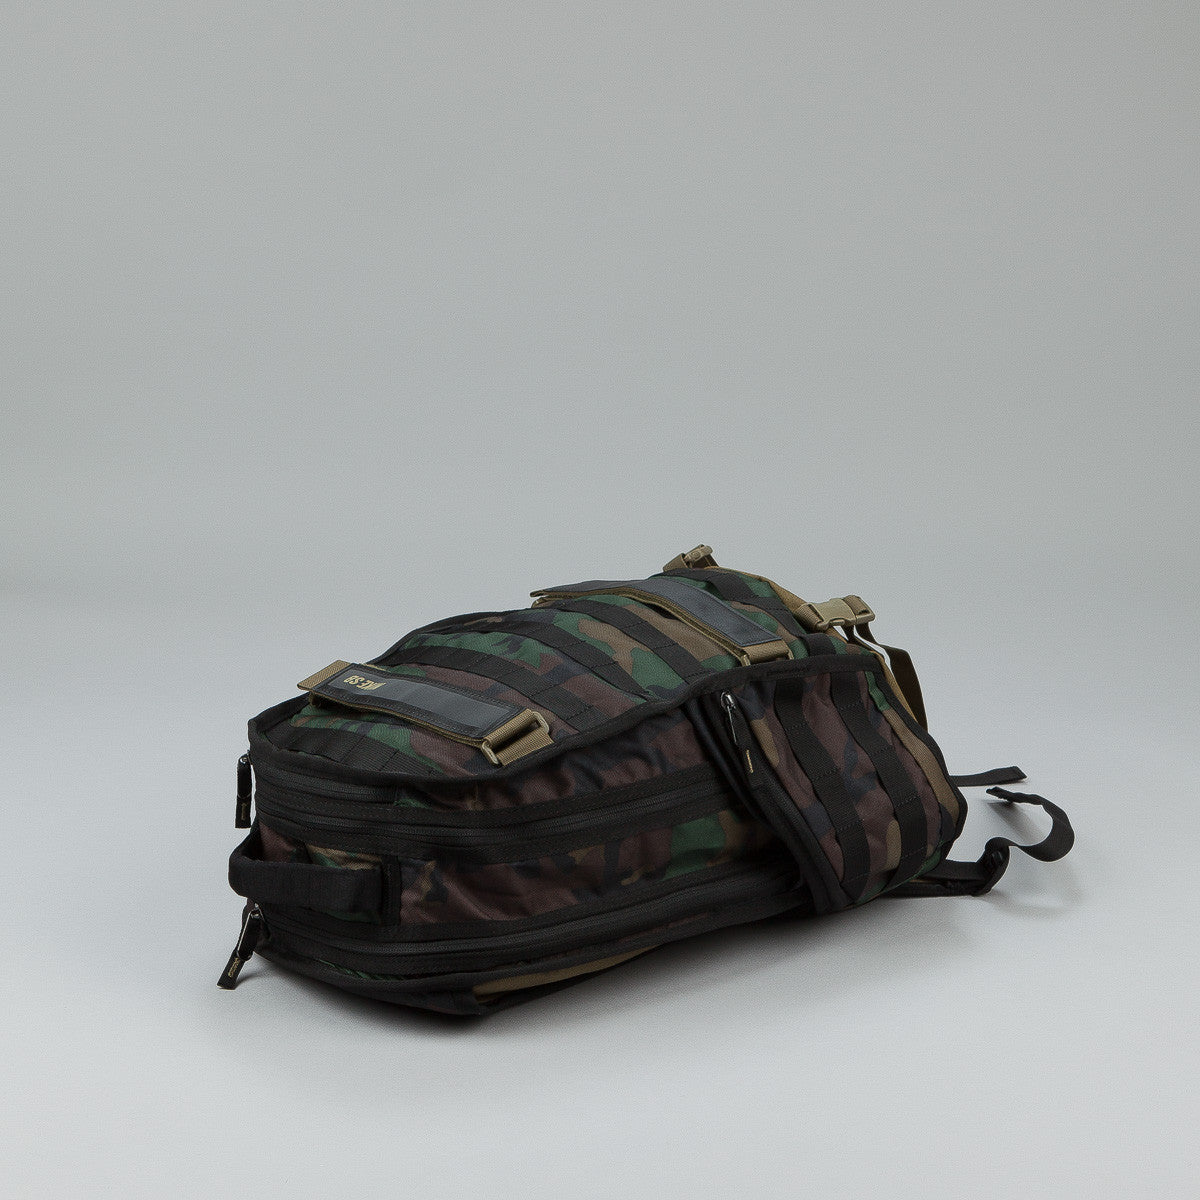 Nike SB RPM Graphic Backpack - Iguana / Iguana